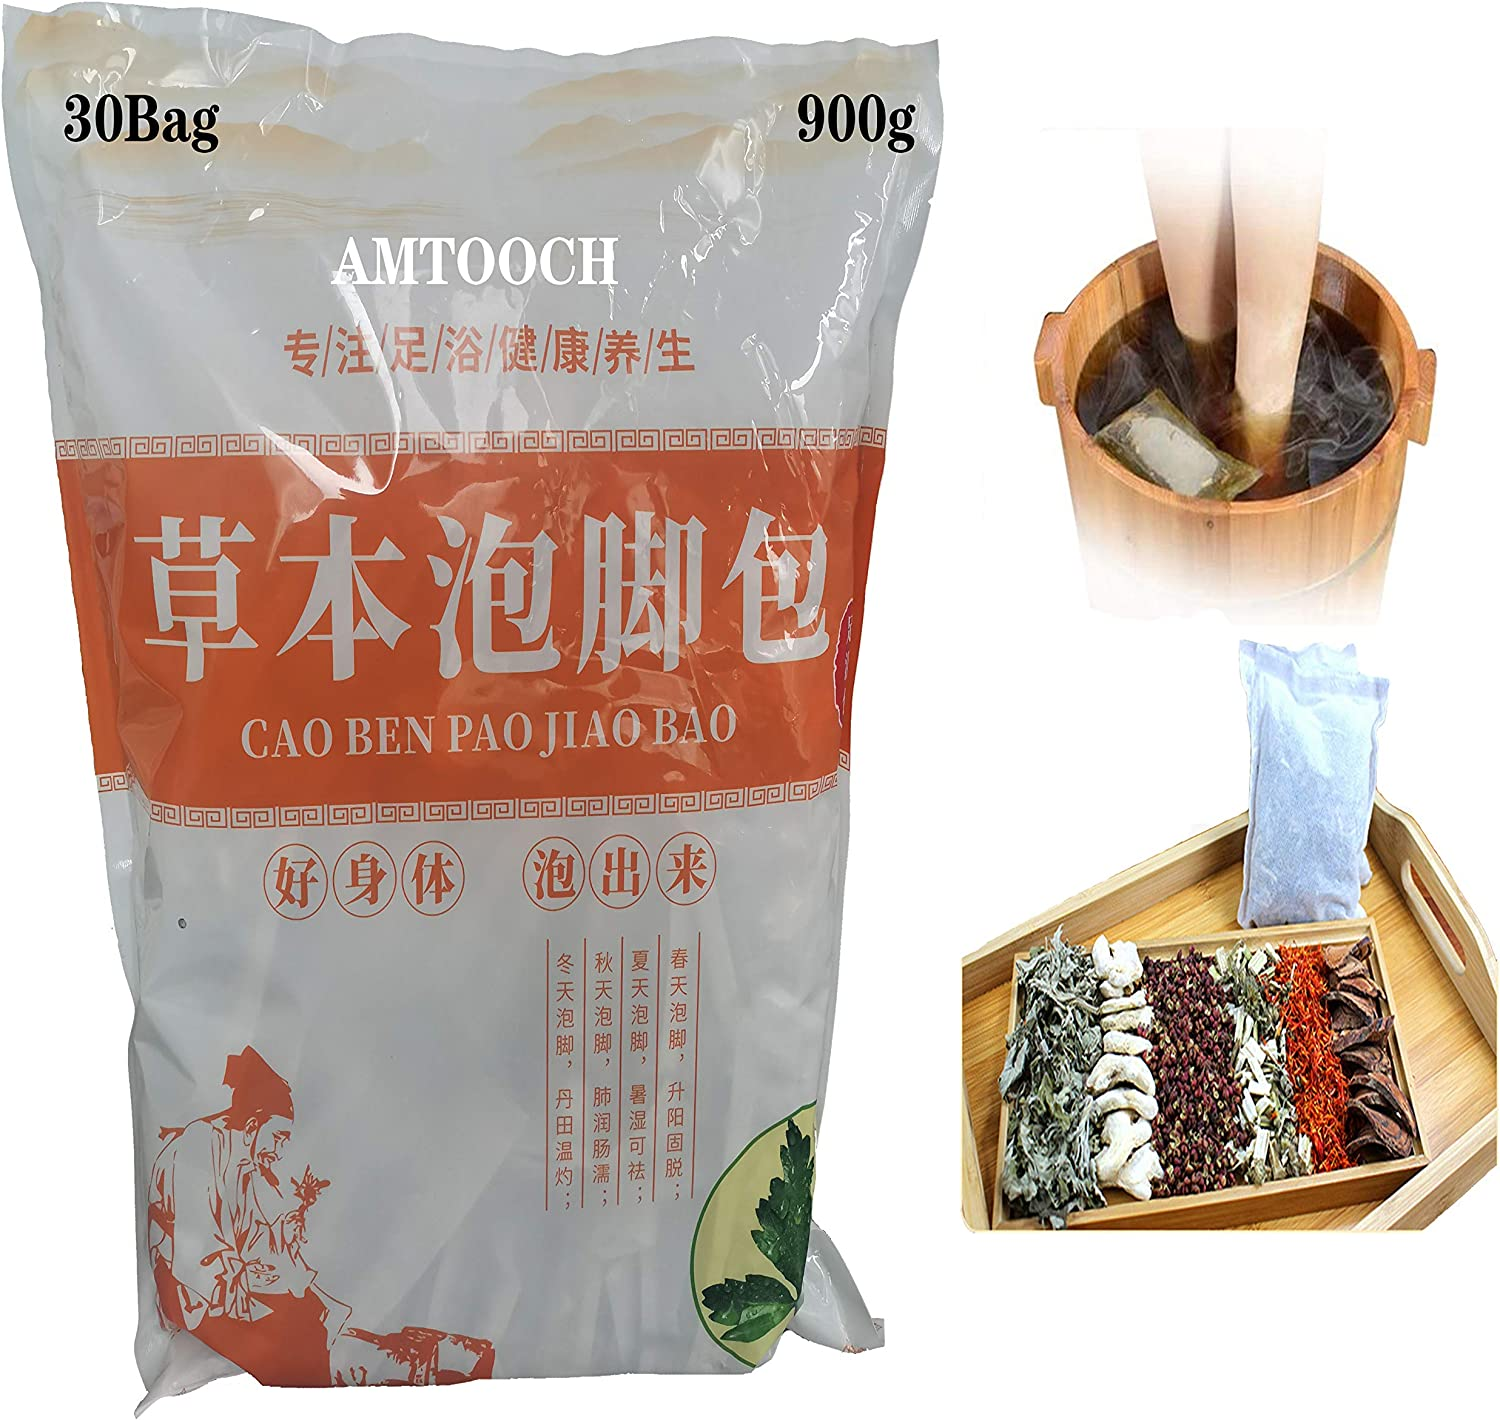 6Favors of Foot Bath Herb Ranking integrated 1st place Long Beach Mall Medicine Herbal spa Soak Chinese